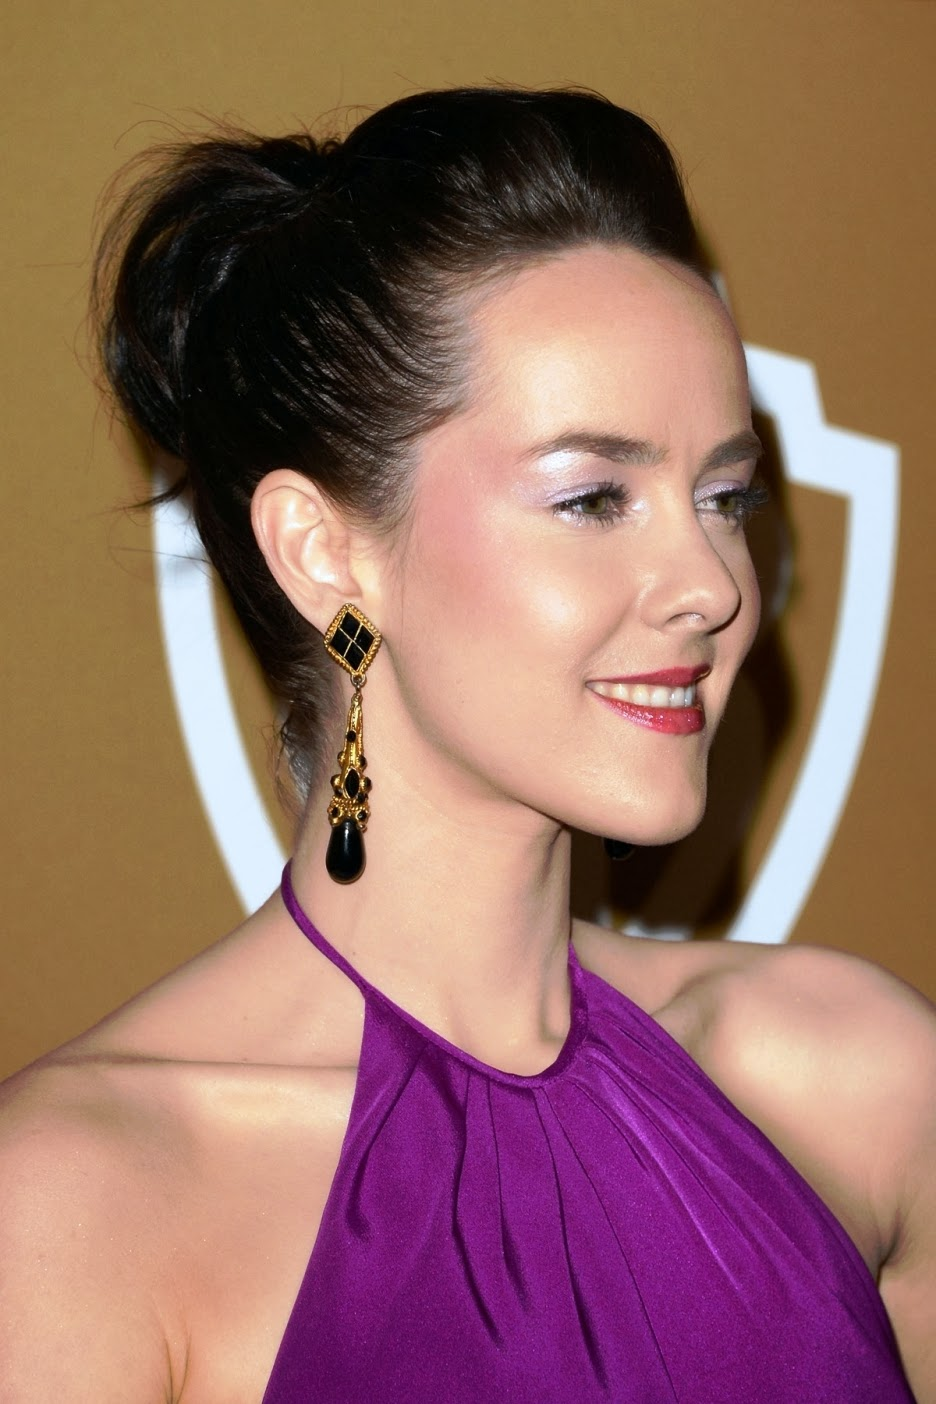 Jena Malone Actress Jena Malone Is An American Actress And Musician